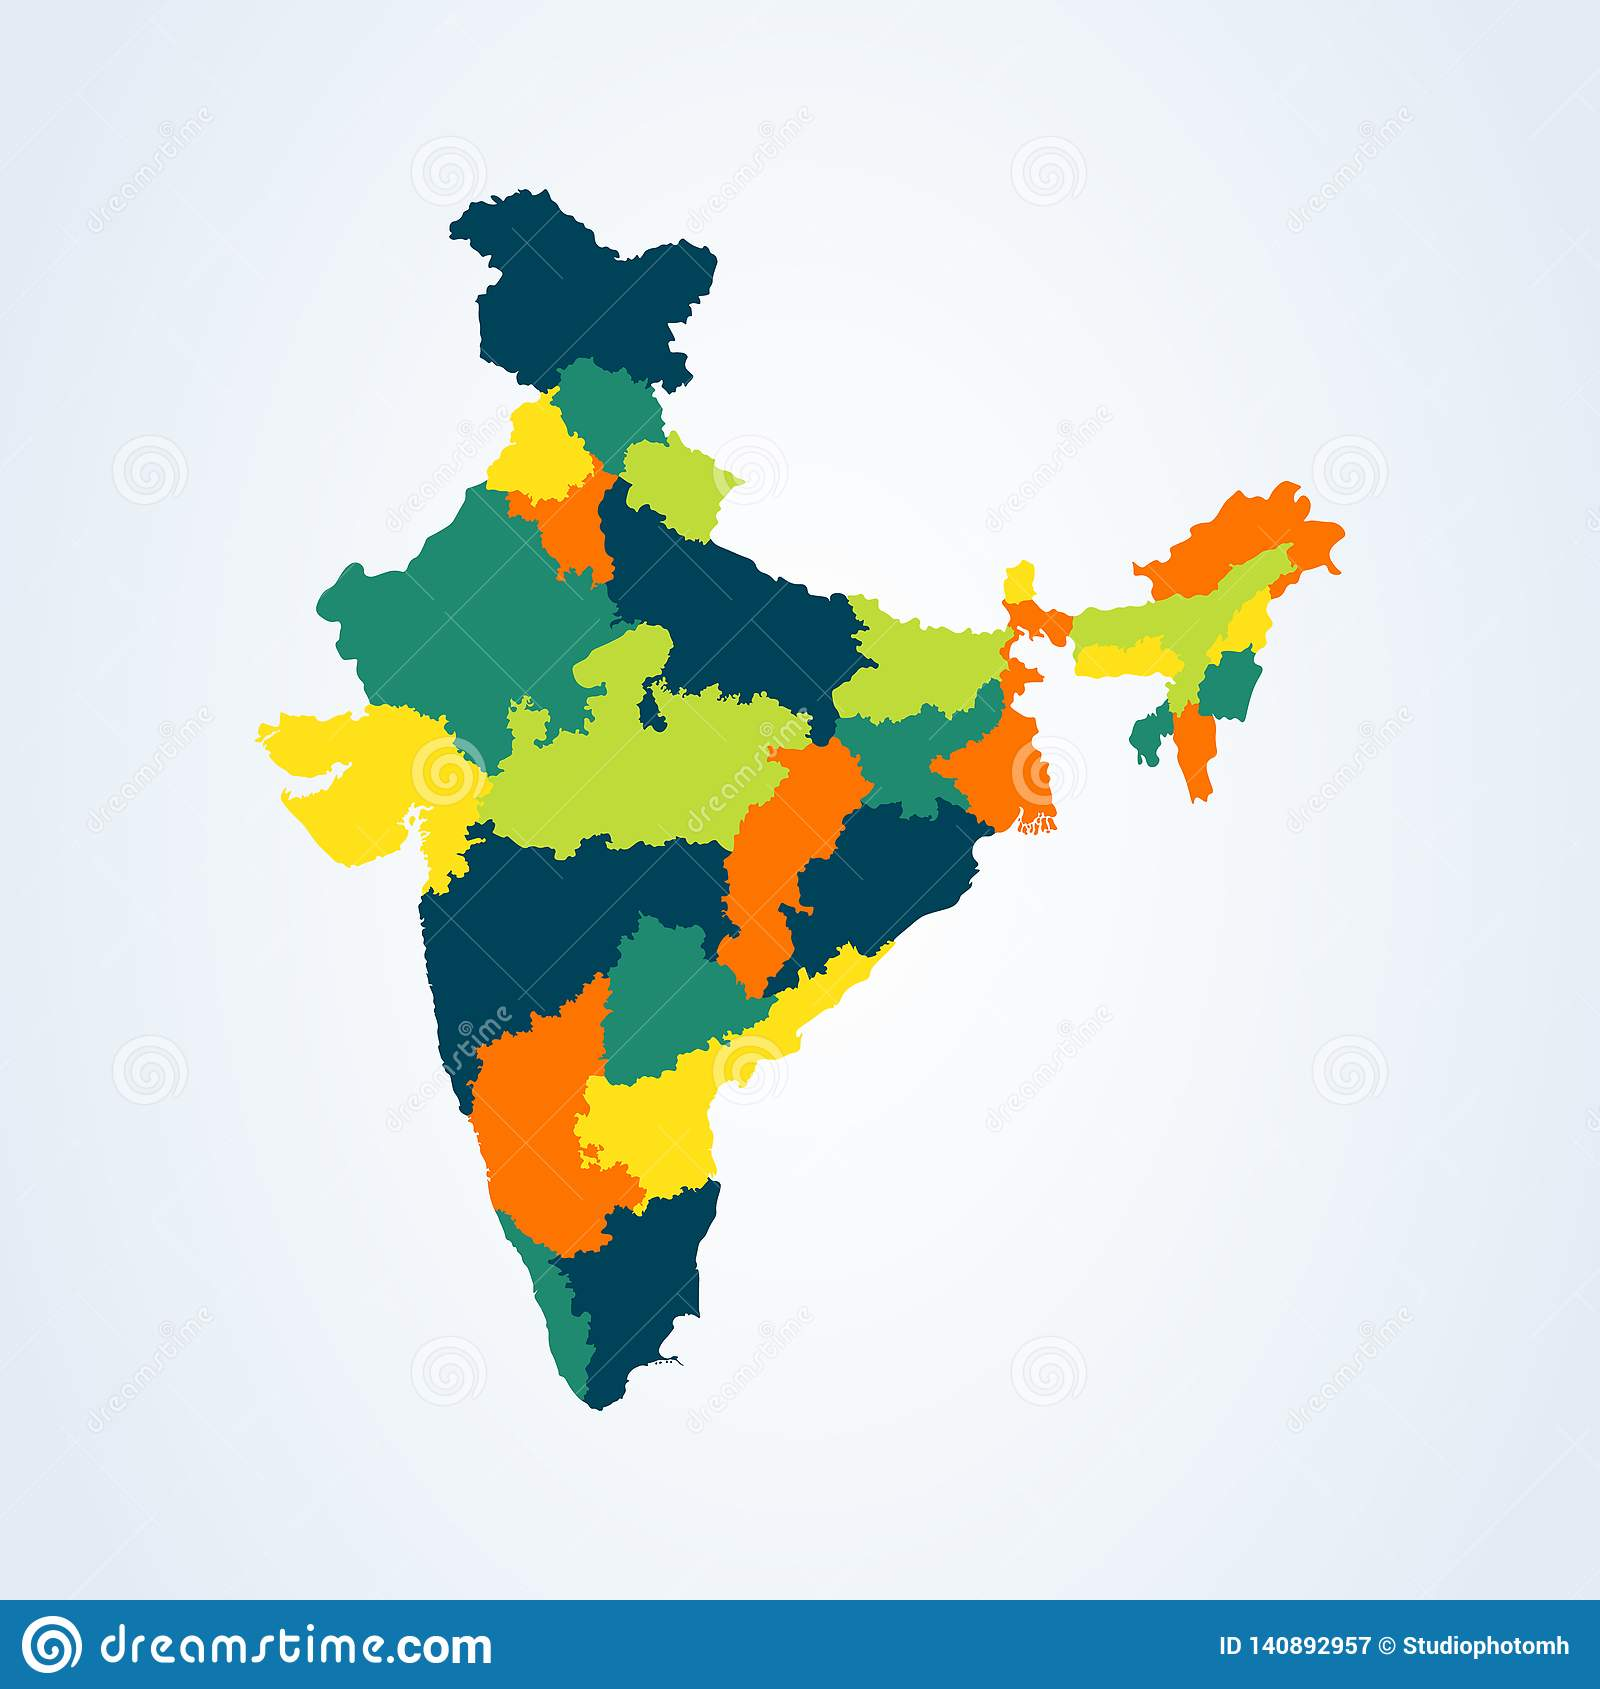 Map Of The Republic Of India With The States Colored Vector ... Image Of Colored Map India on highlighted map of india, abstract map of india, national geographic map of india, world map india, chinese map of india, plain map of india, colors of india, black and white map of india, transparent map of india, colored world map, large map of india, water map of india, labeled map of india, asian map of india, enlarged map of india, small map of india, full map of india, hindu kush map of india, elevation map of india, old map of india,